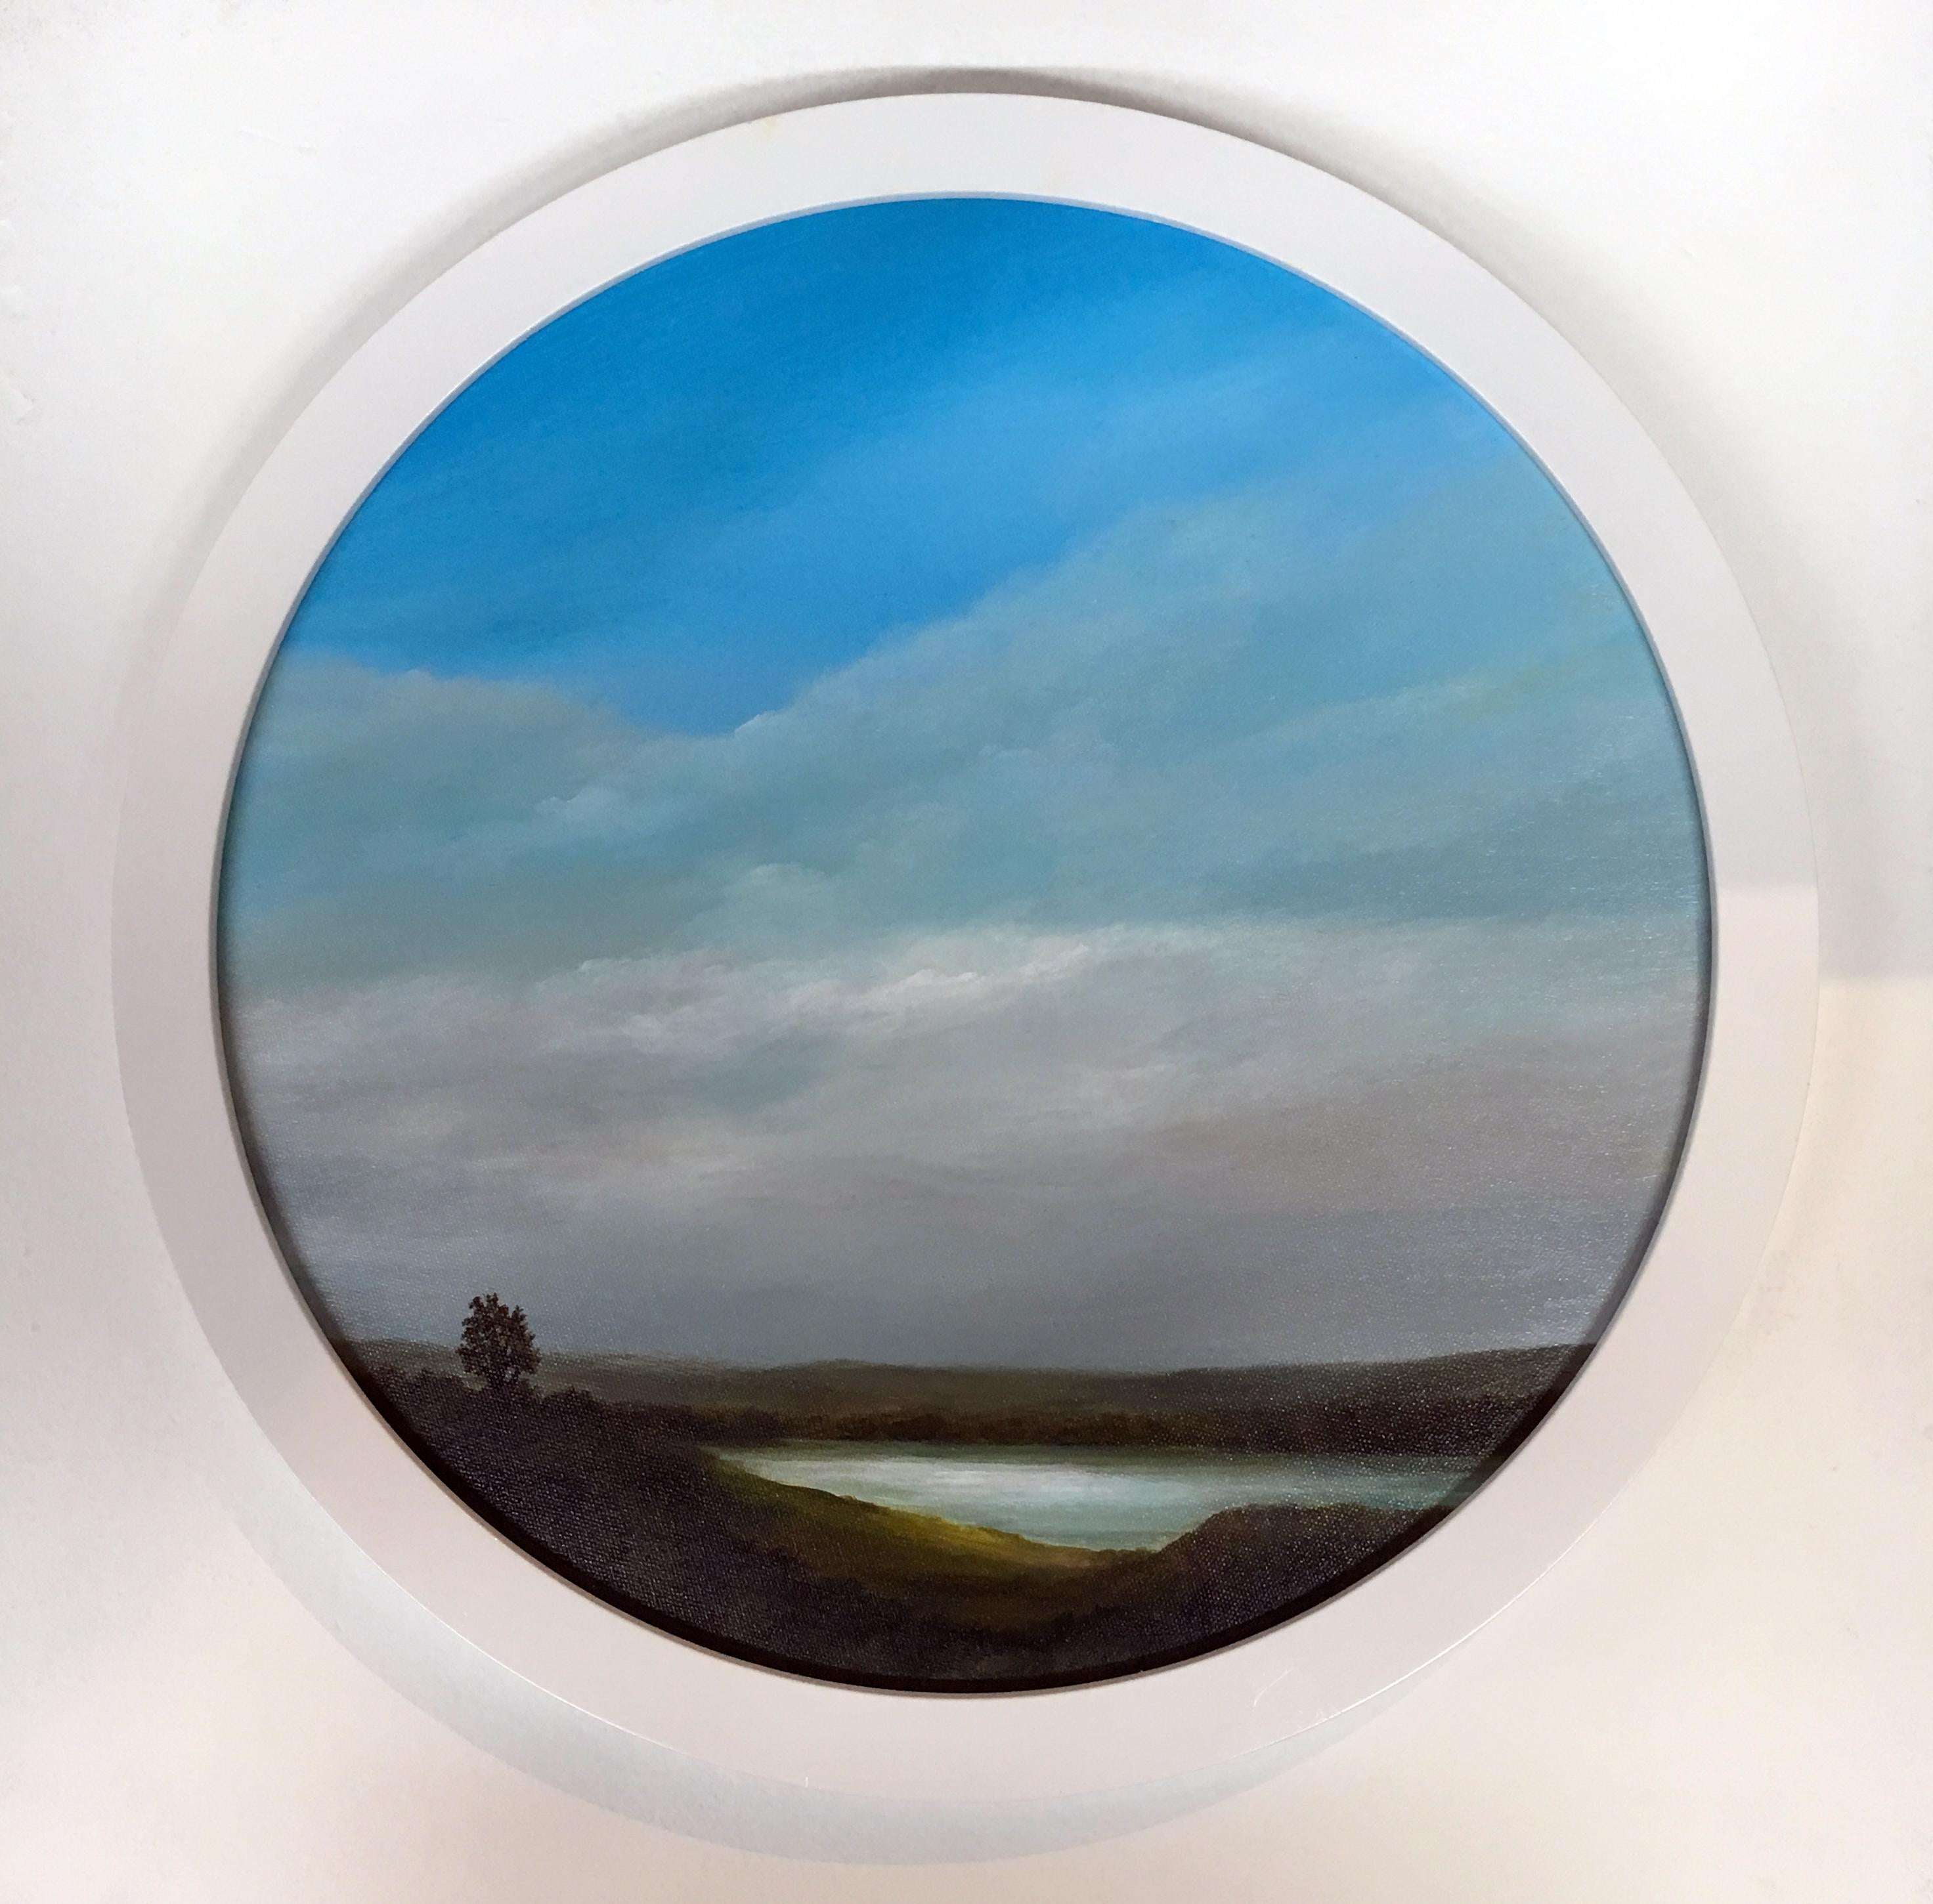 Looking North Above the River, Oil and Acrylic Paint on Round Canvas, Framed